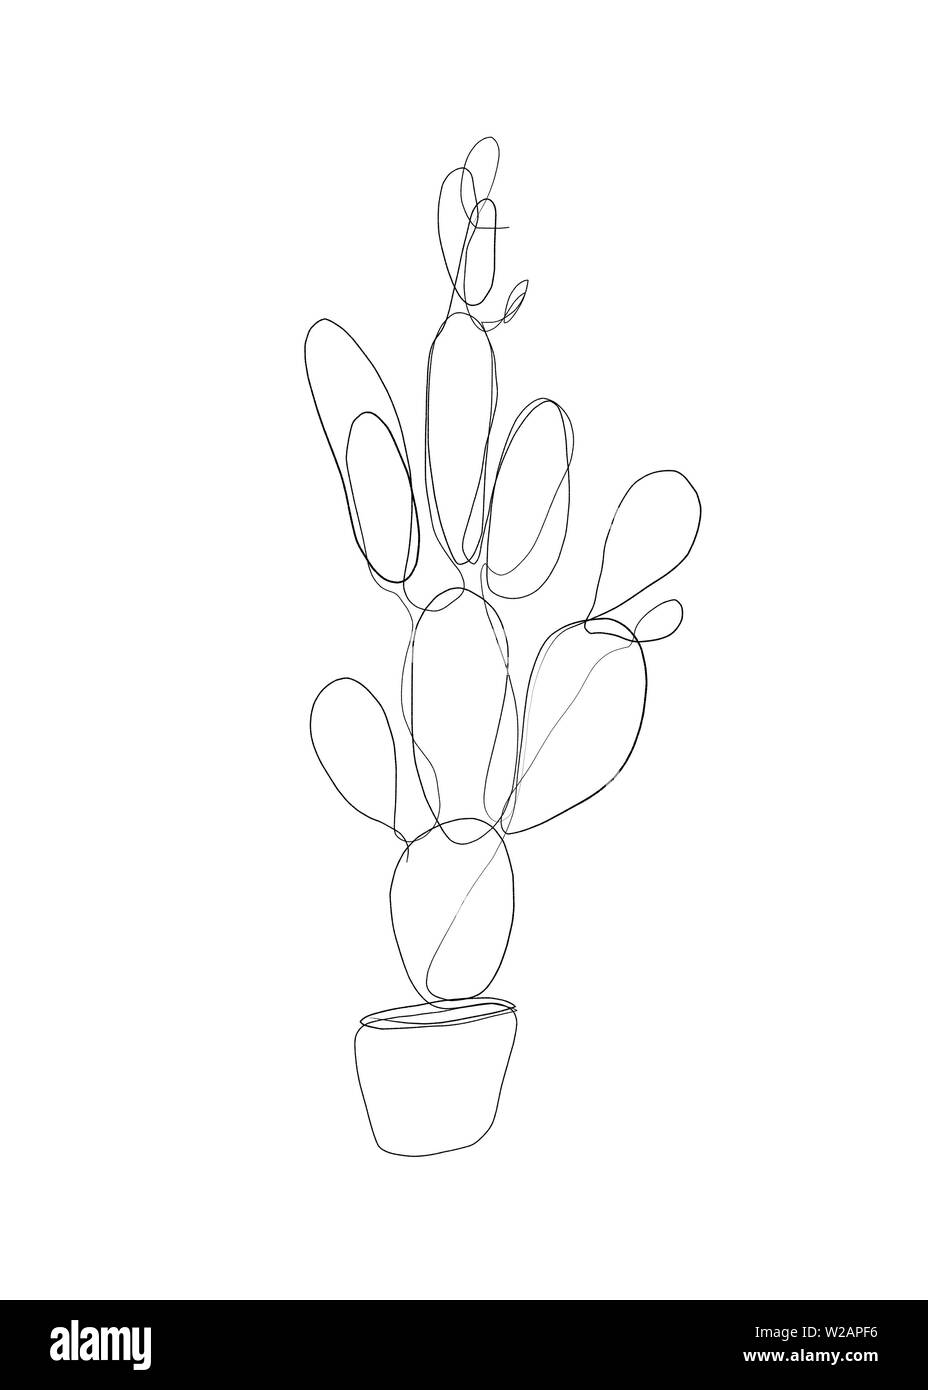 Abstract Line Drawing Of A Cactus Succulent House Plant Art Work Of Plants For Private Commercial And Editorial Use Abstract Line Drawing Of A Cact Stock Photo Alamy